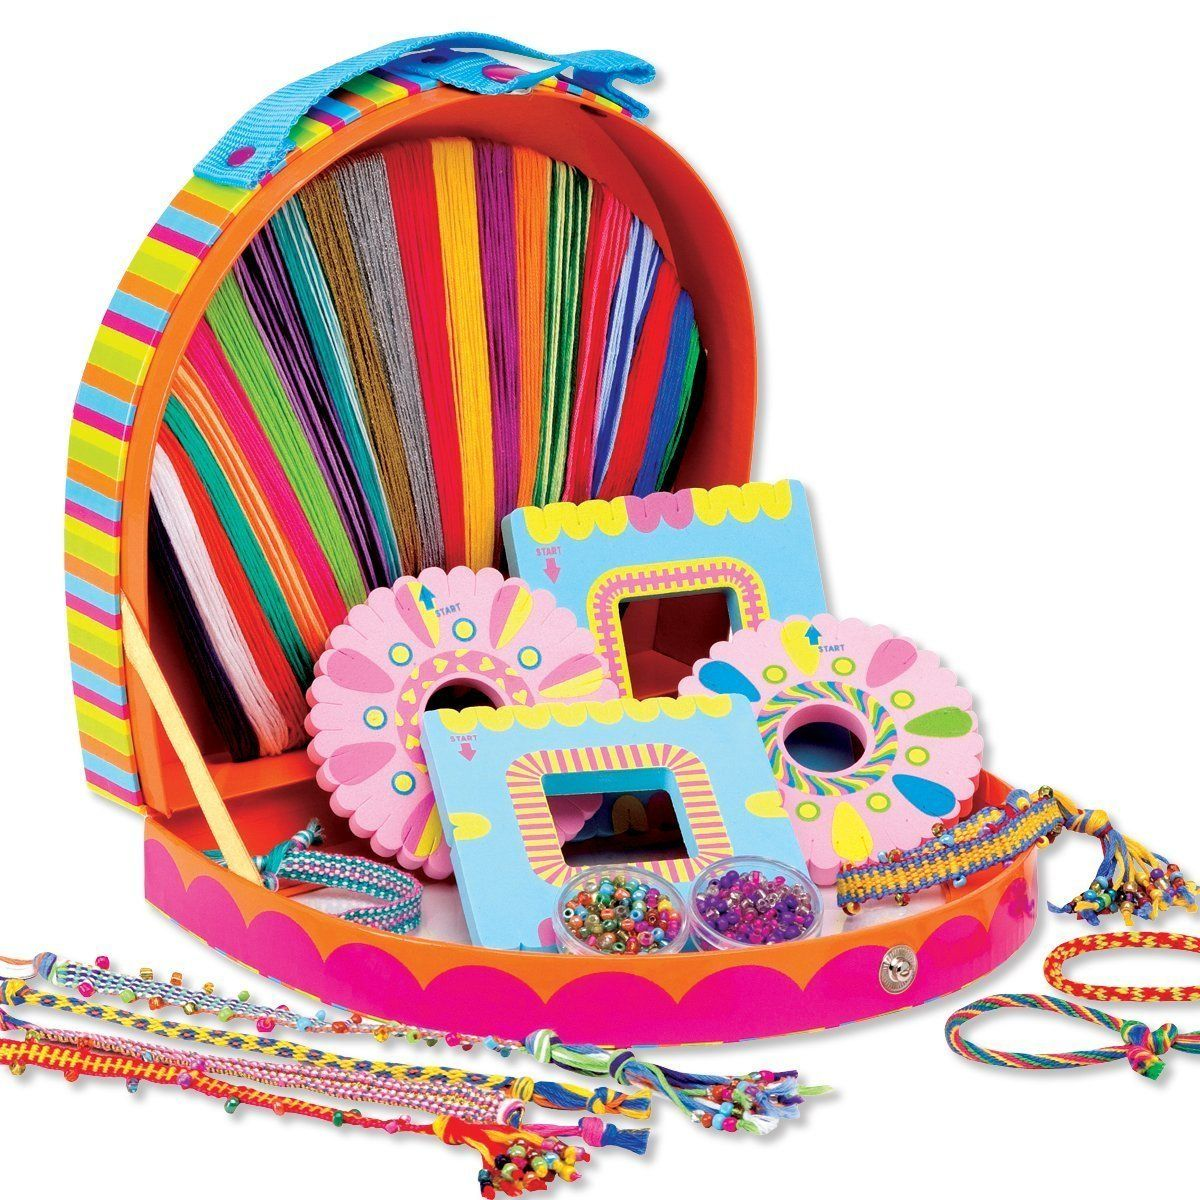 Friends 4 Ever Friendship Bracelet Making Kit w Colorful Carrying Case